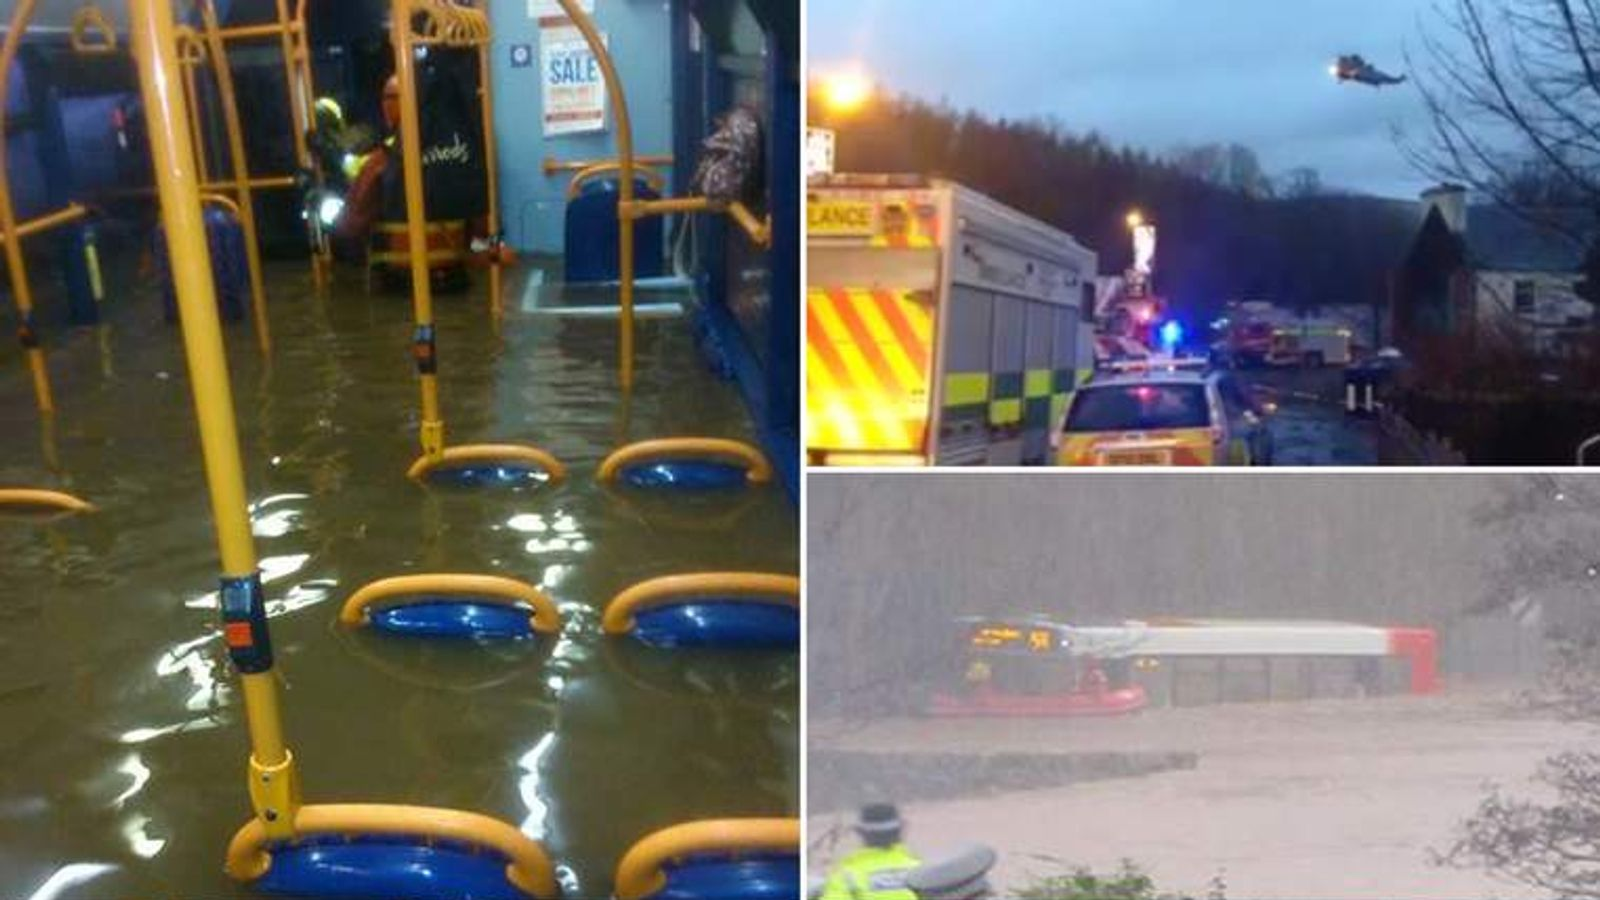 It took more than five hours to evacuate the bus. Pics: Alan Wilson/stevie-montherradio/Shiona Quick